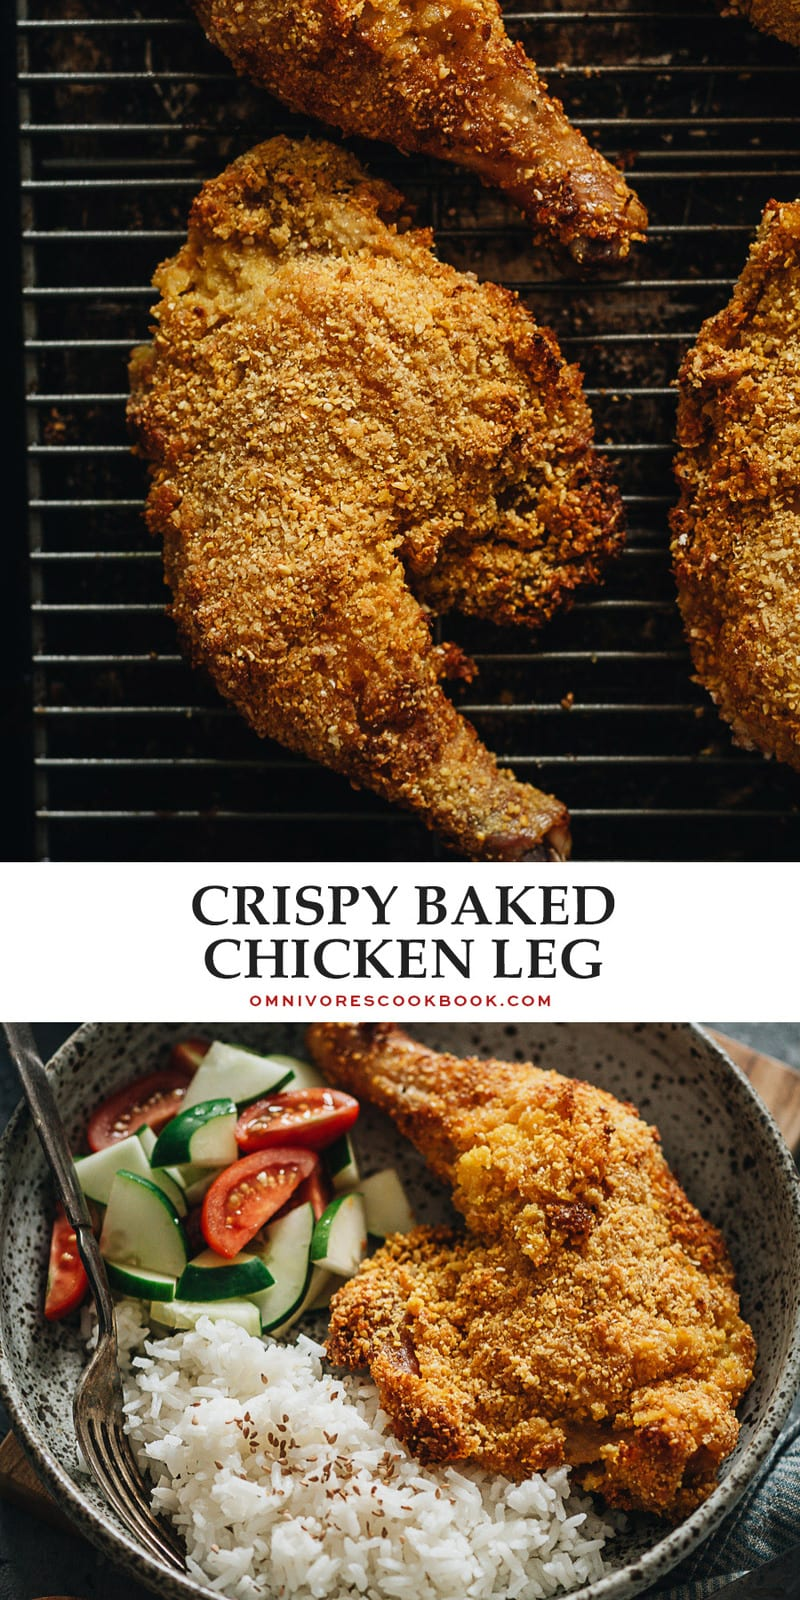 Crispy baked chicken legs give you the juicy crispiness of fried chicken without all the frying, for a comforting and delicious meal everyone will love! {Gluten-Free Adaptable}